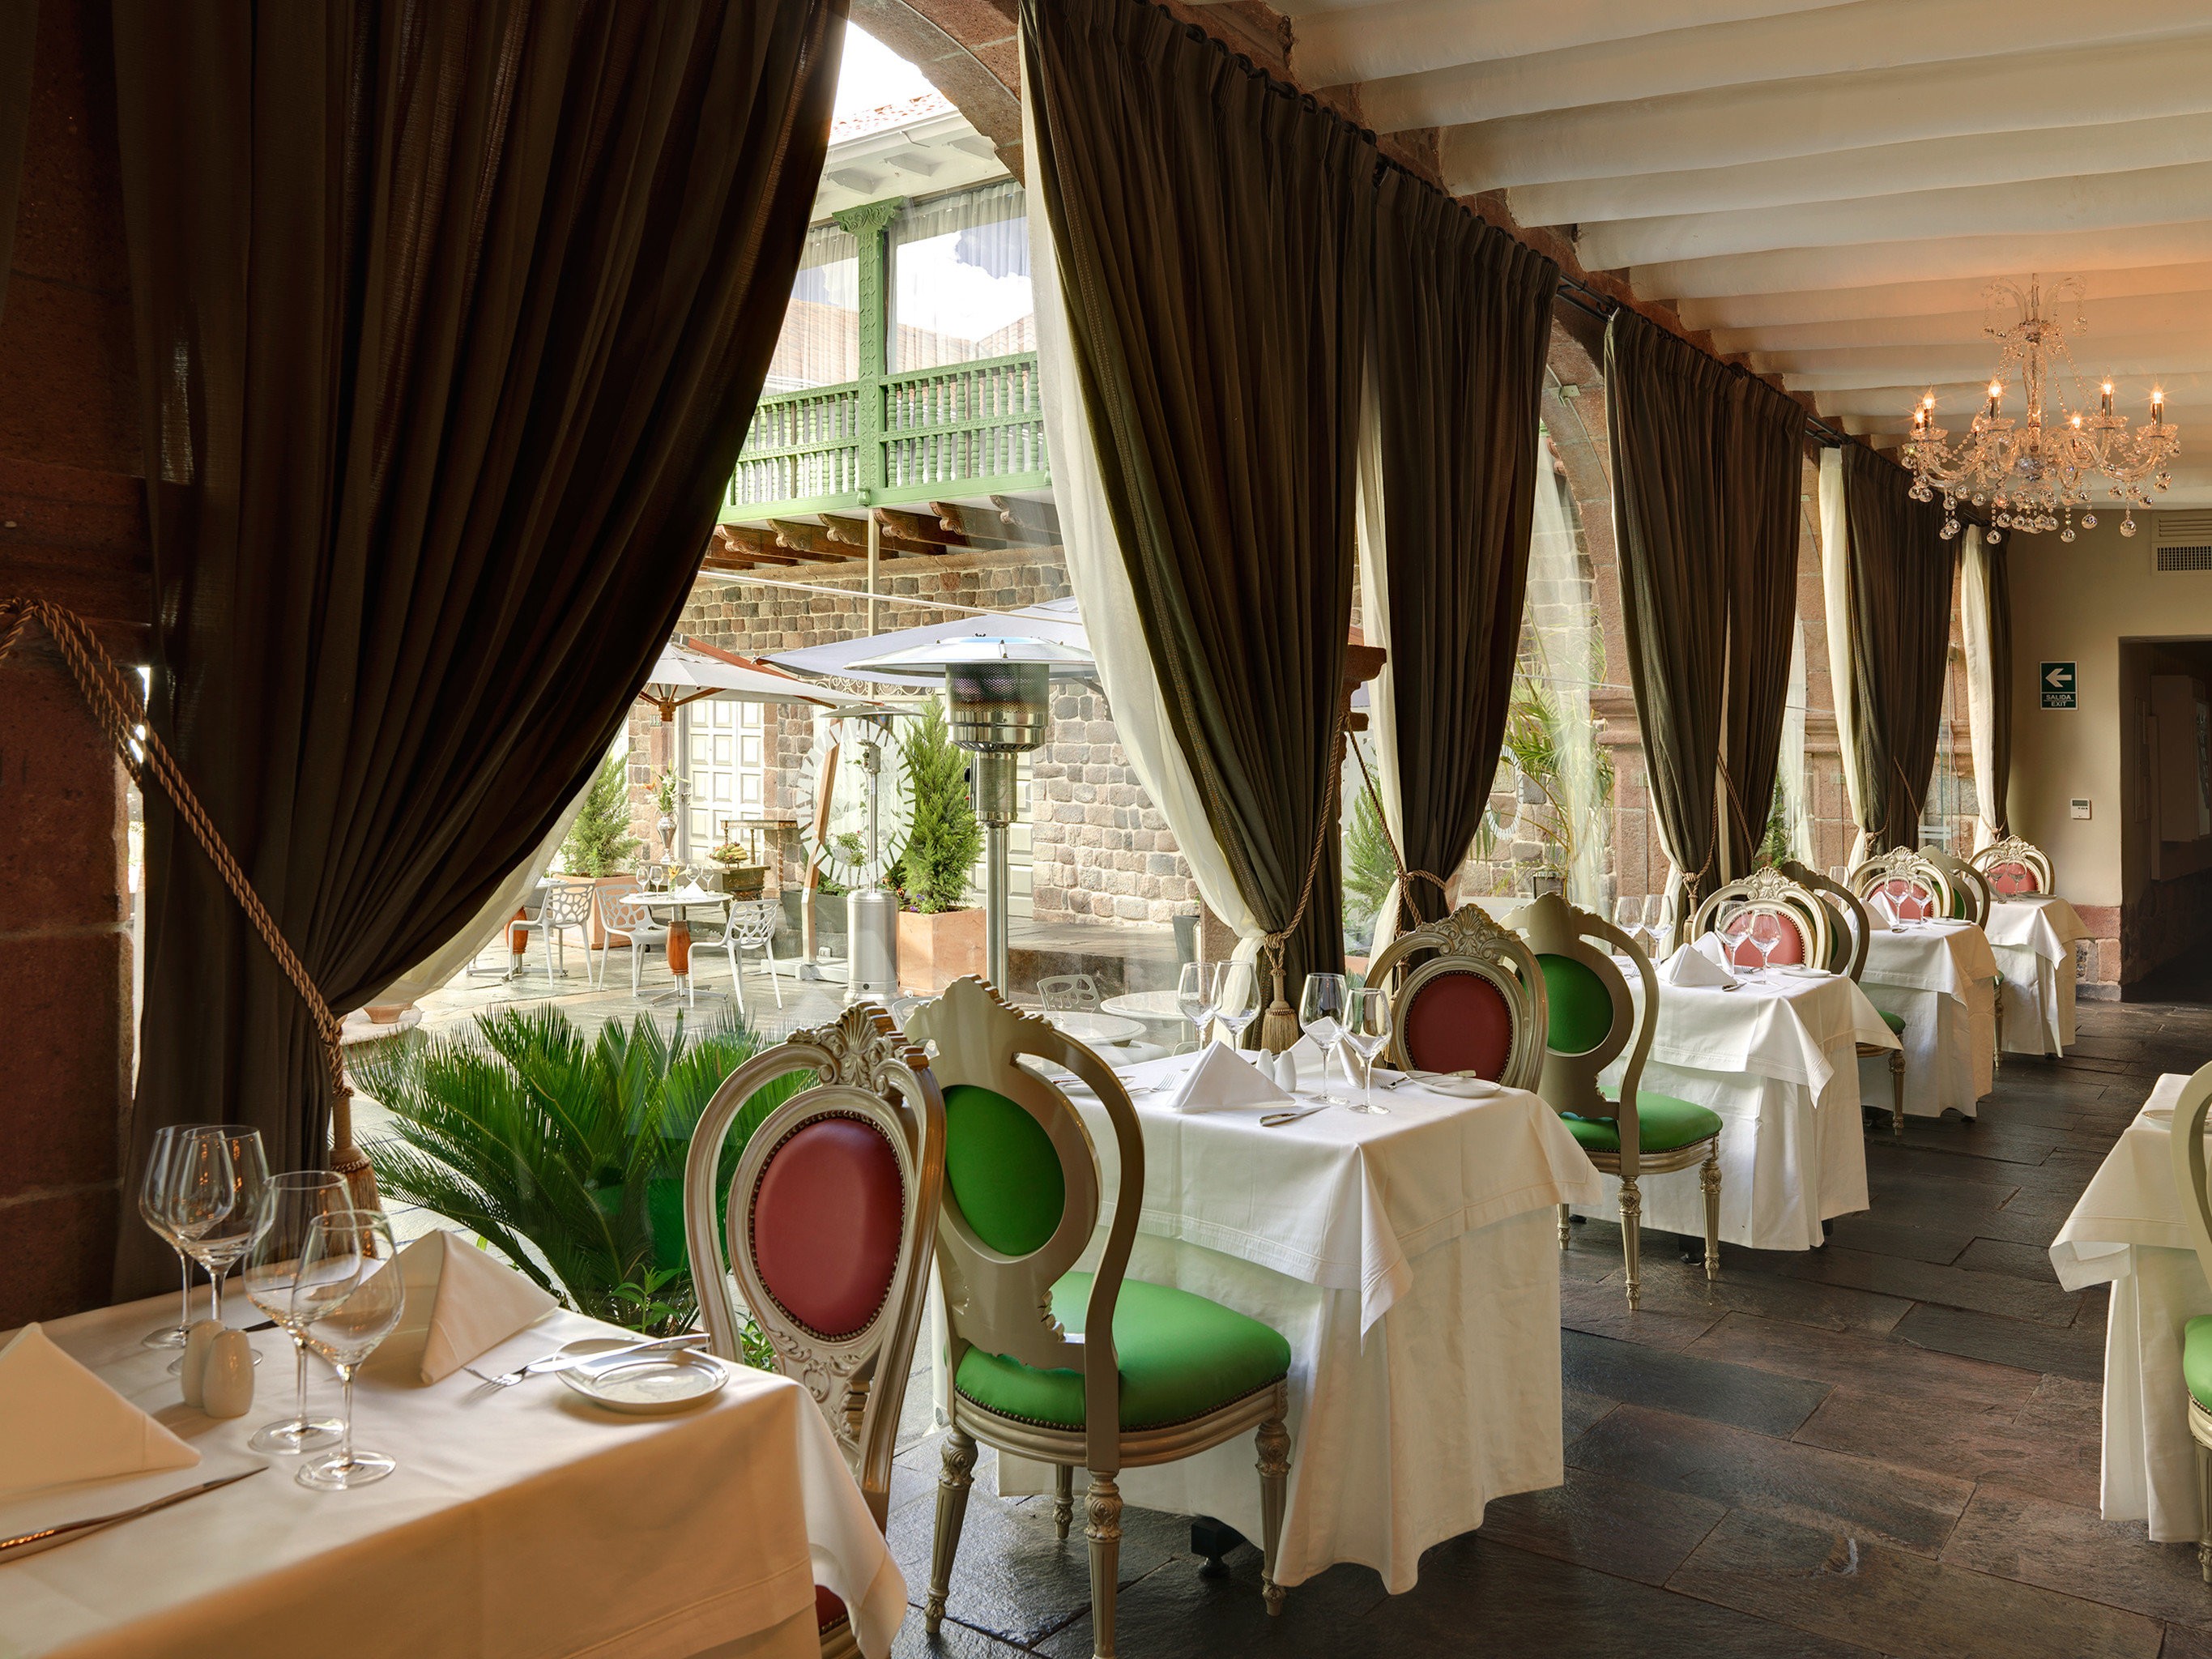 Boutique Dining Drink Eat curtain restaurant function hall wedding ceremony Resort Suite tub